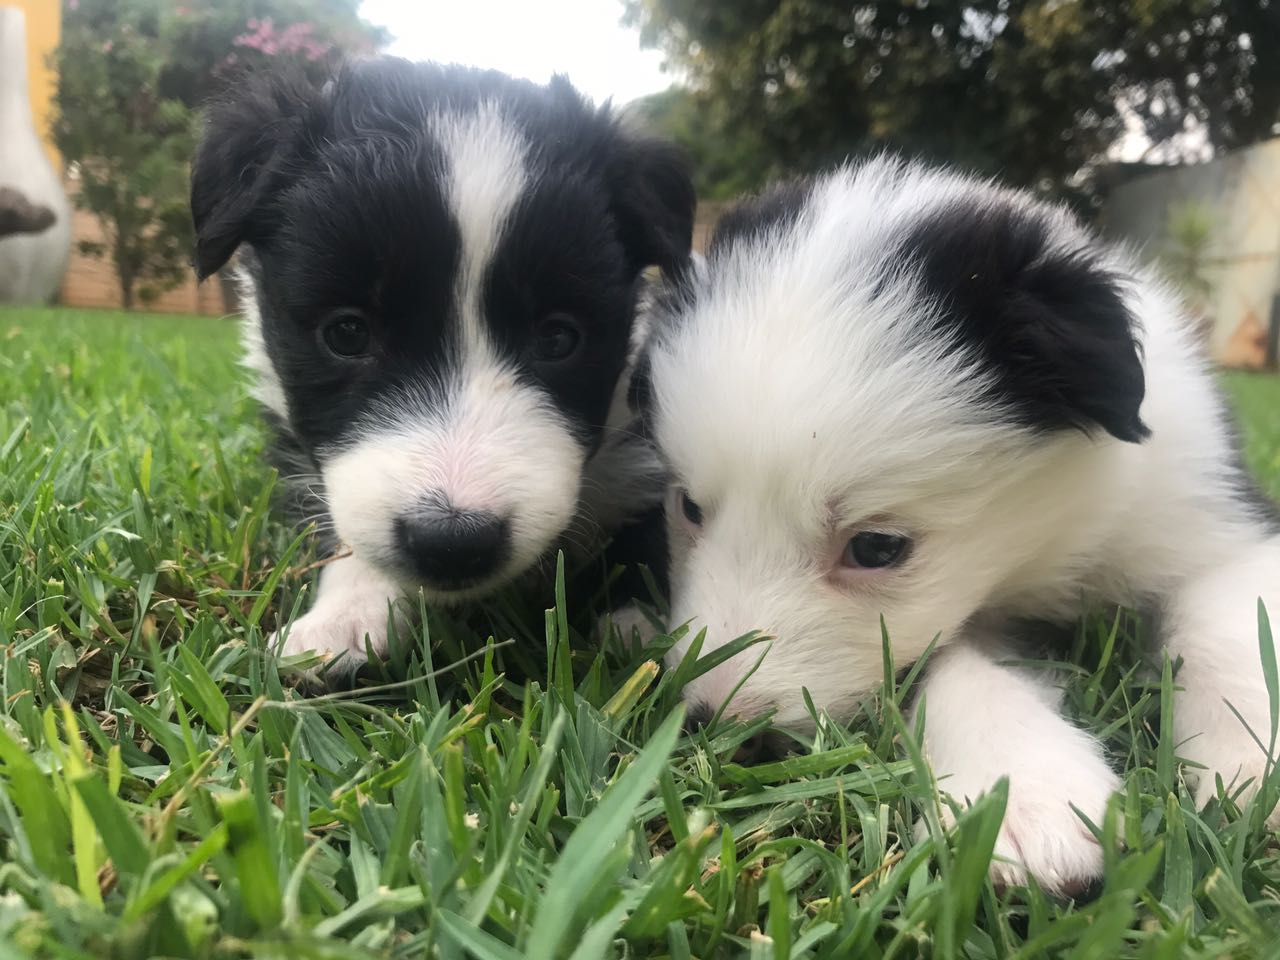 BORDER COLLIE PUPPIES FOR SALE | Junk Mail